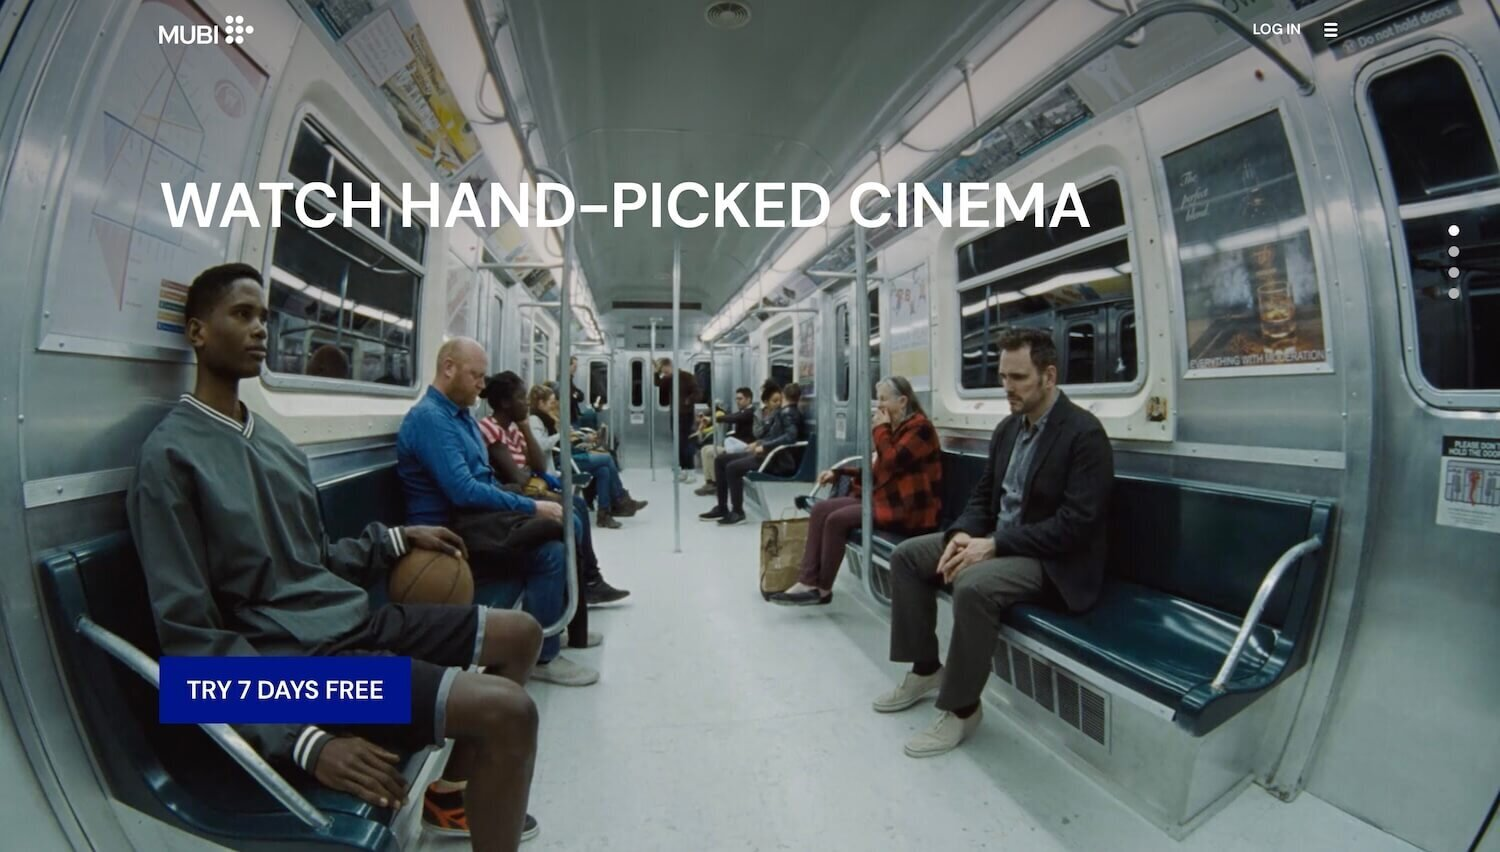 MUBI Arthouse Cinema Streaming Deals and Trials UK